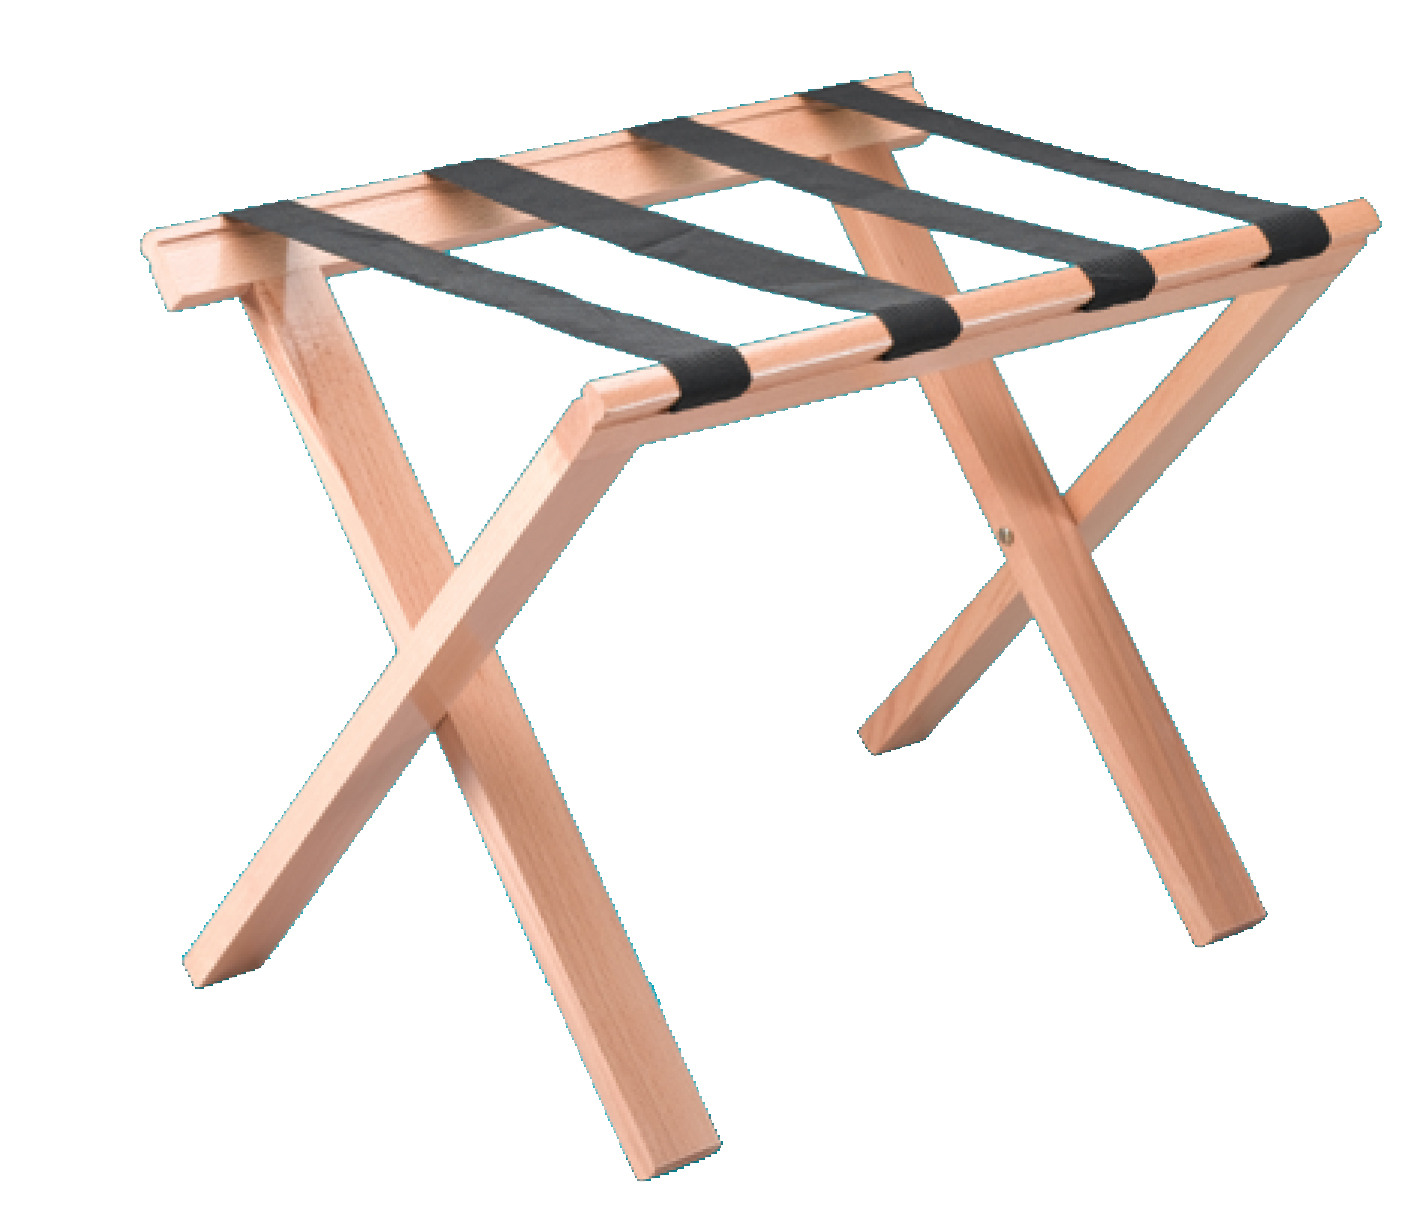 Eston Brown Hotel Luggage Racks